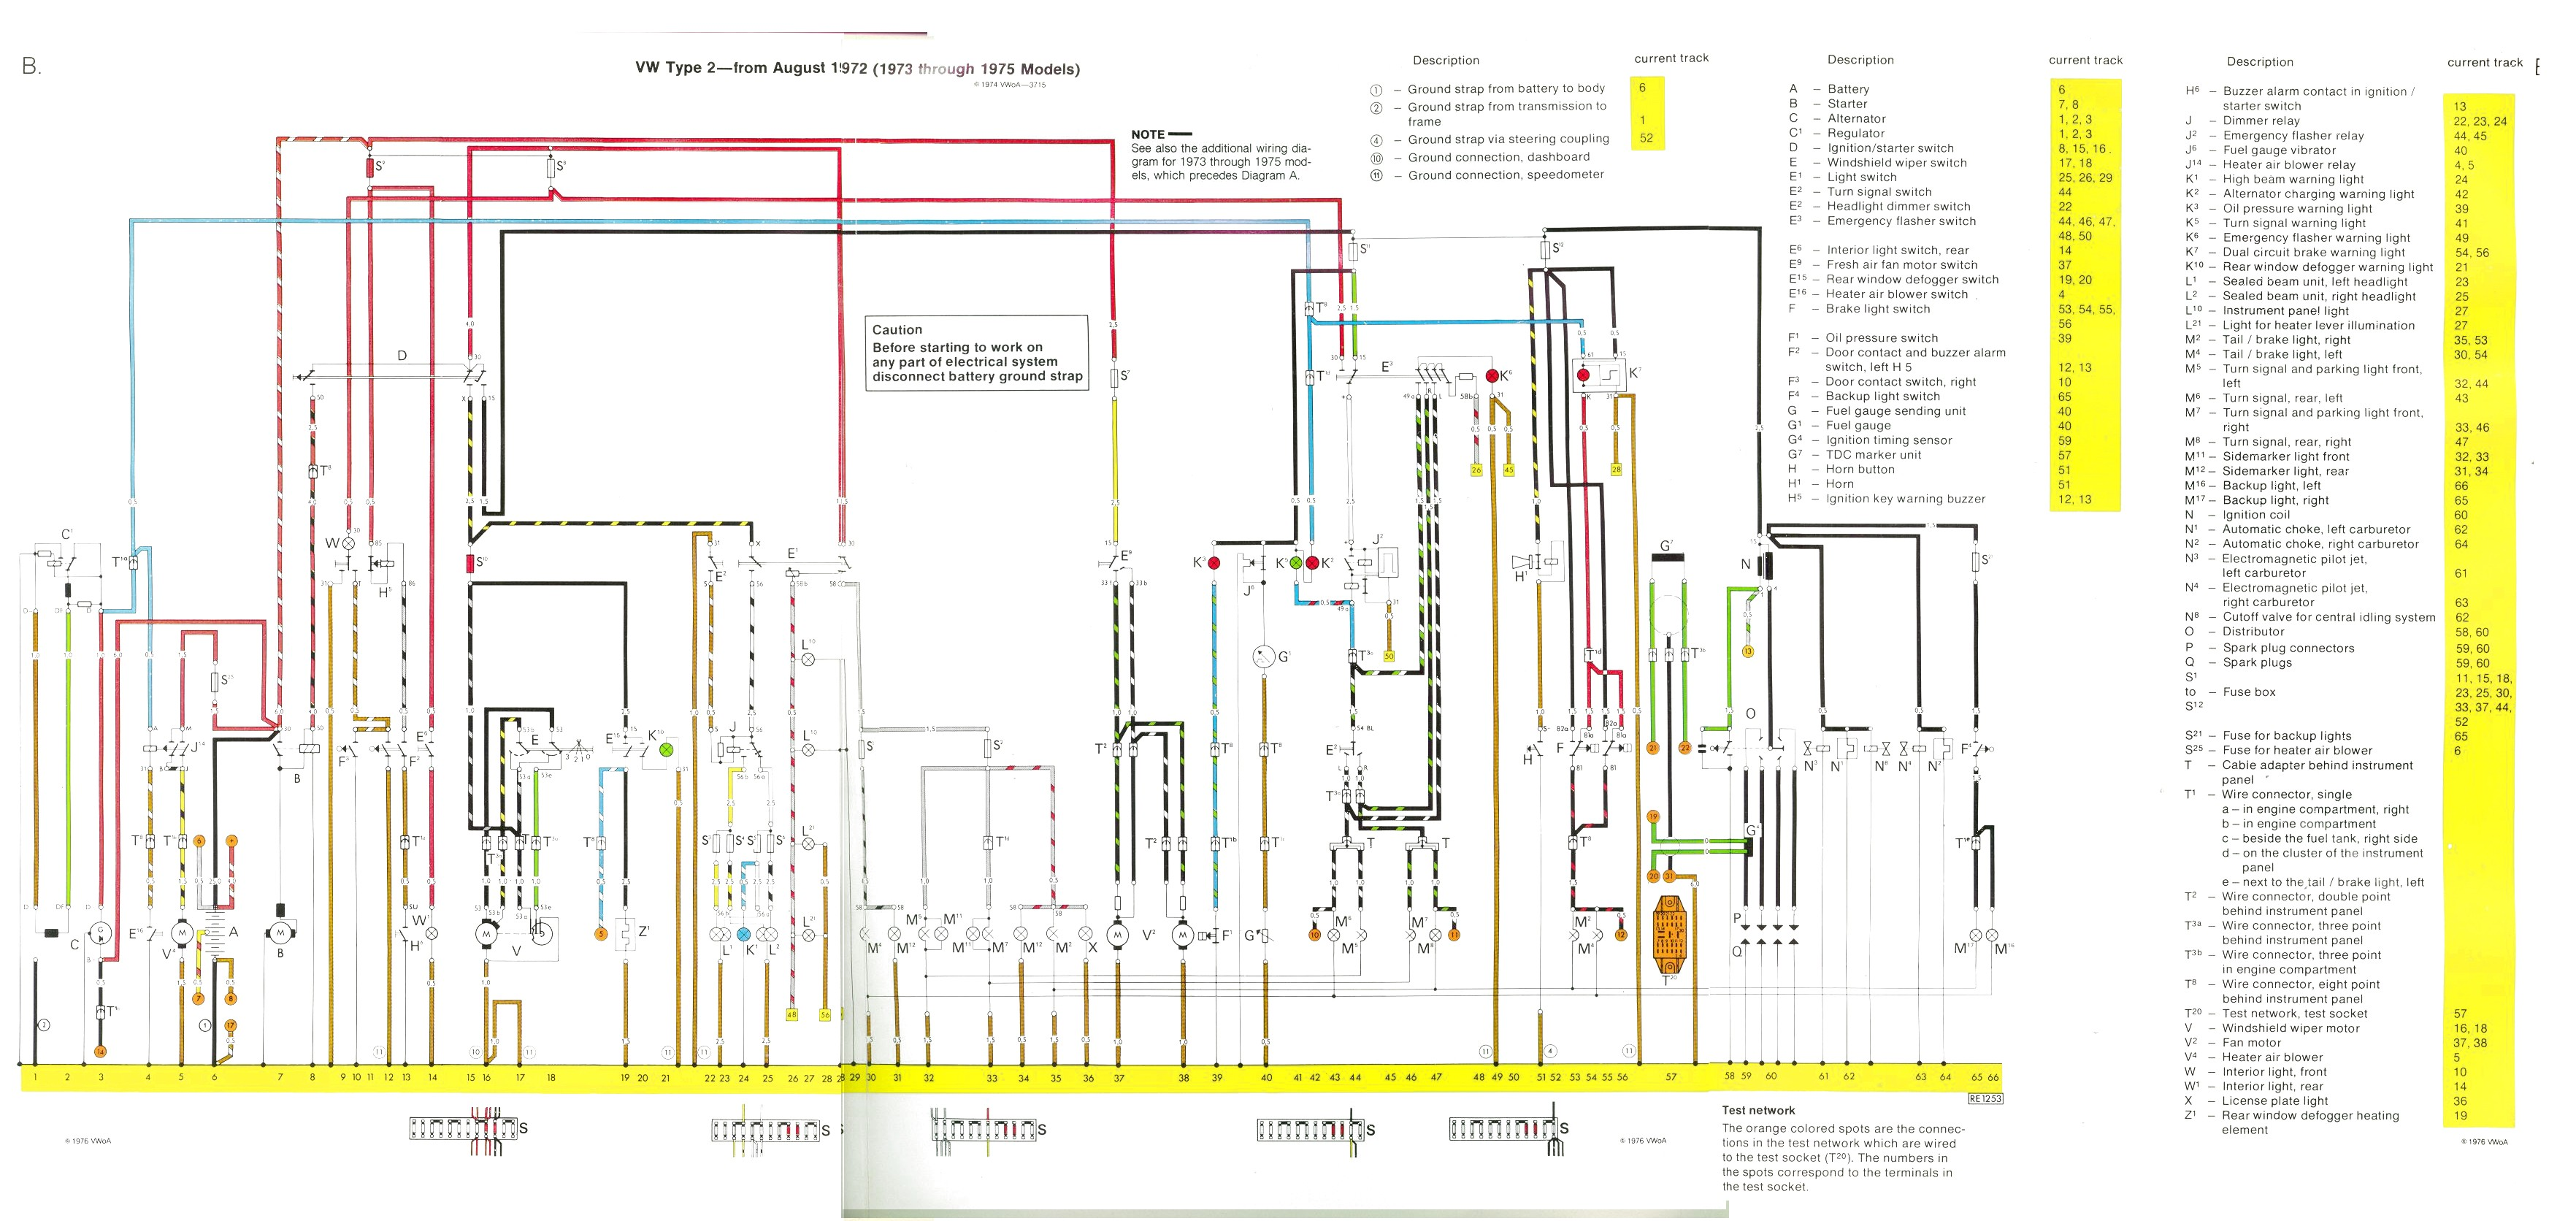 bus 73 75 74 super beetle wiring diagram 74 vw super beetle wiring diagram 1964 VW Beetle Wiring Diagram at creativeand.co